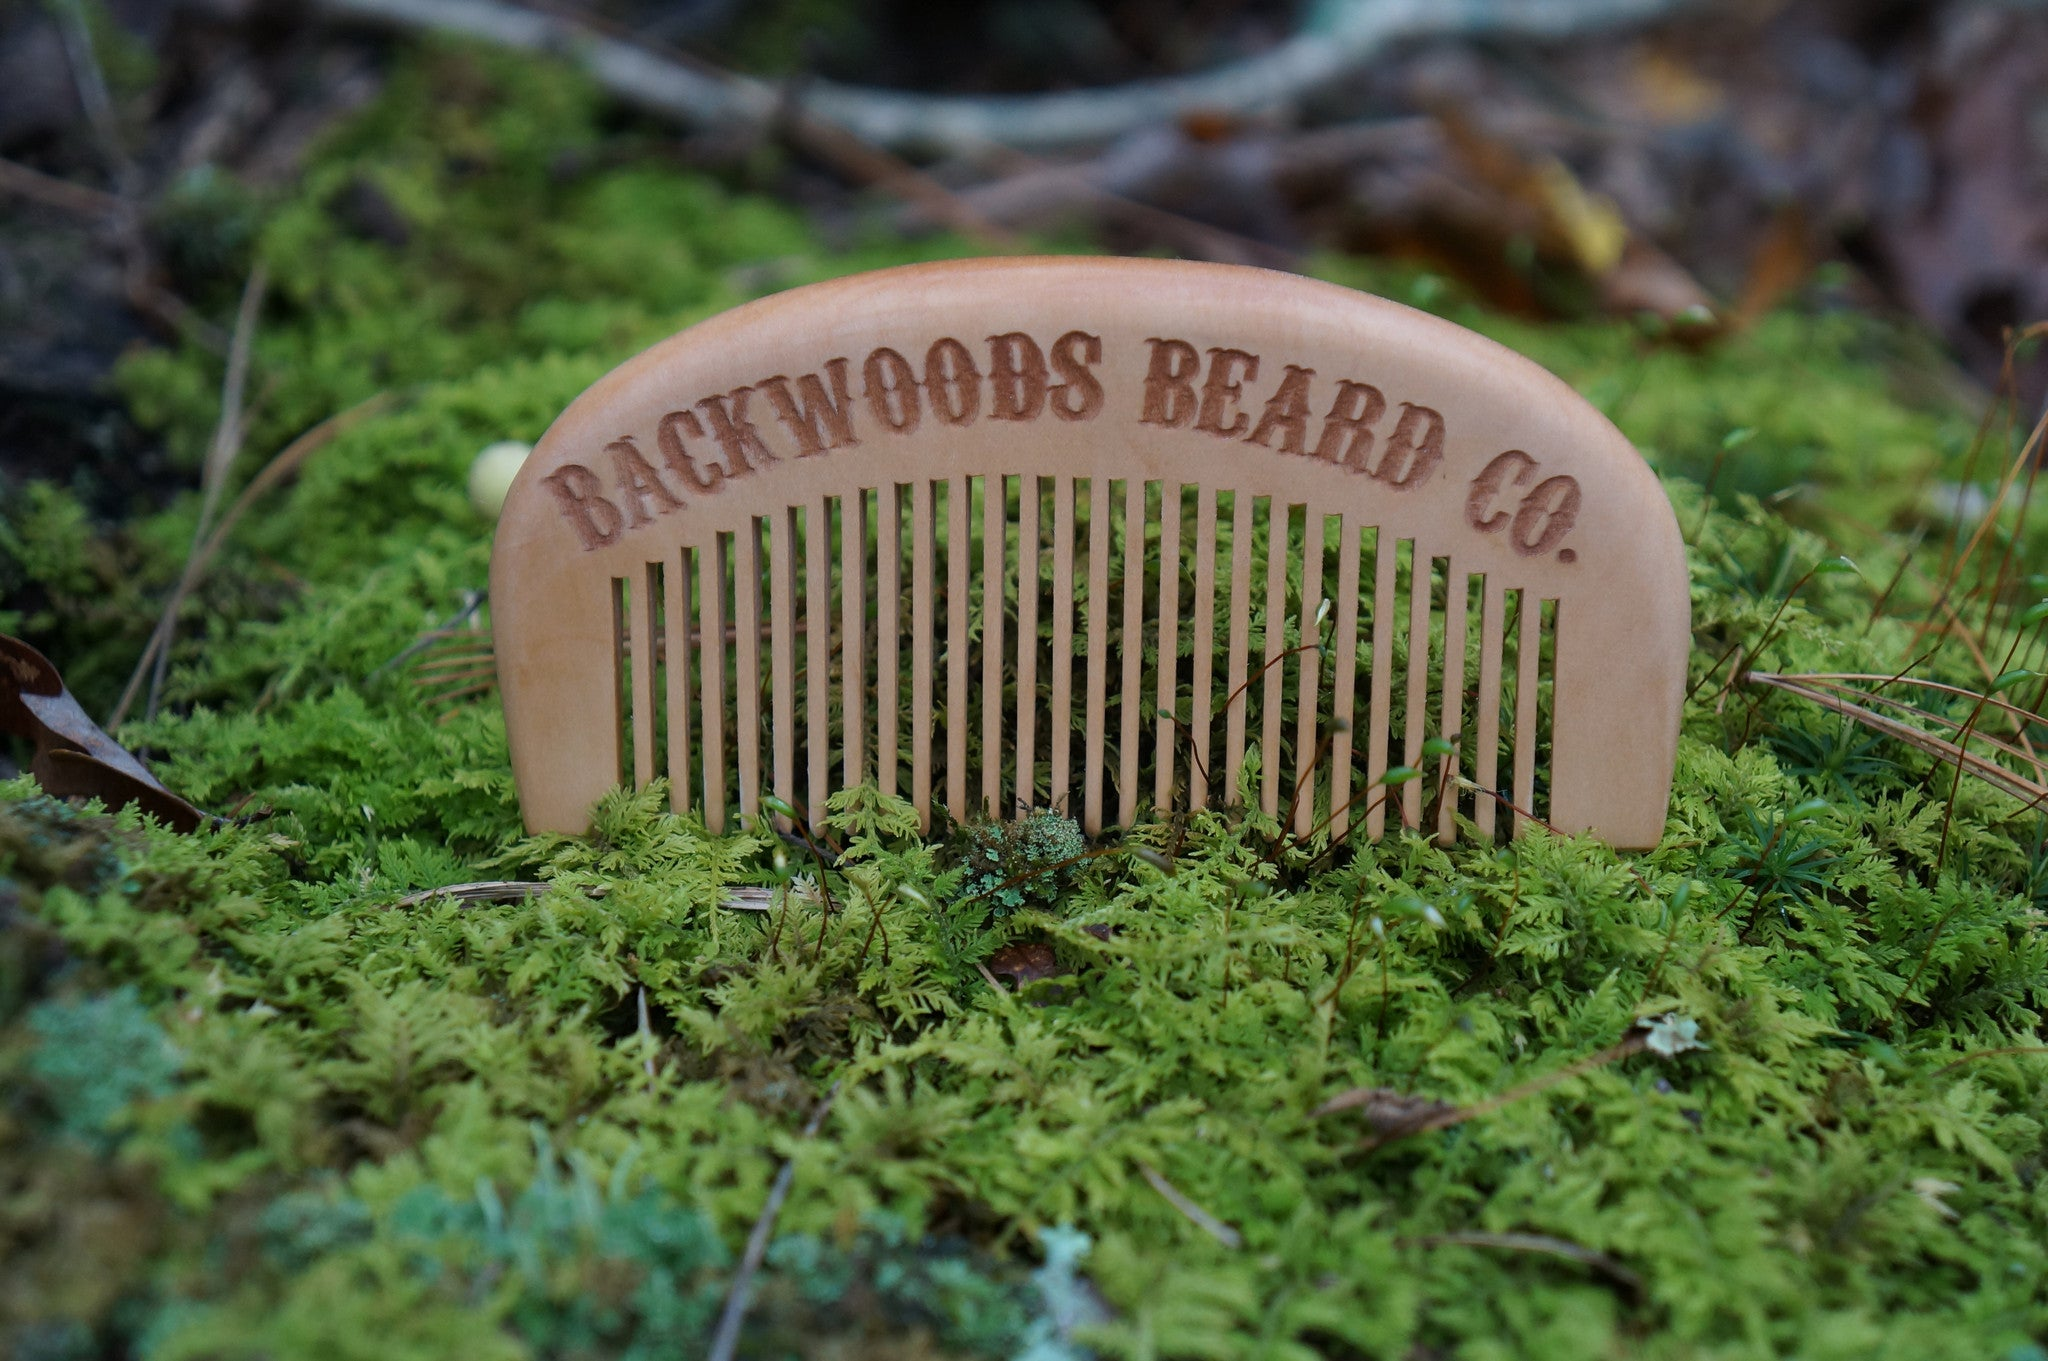 Handcrafted Natural Peach Wood Beard Comb